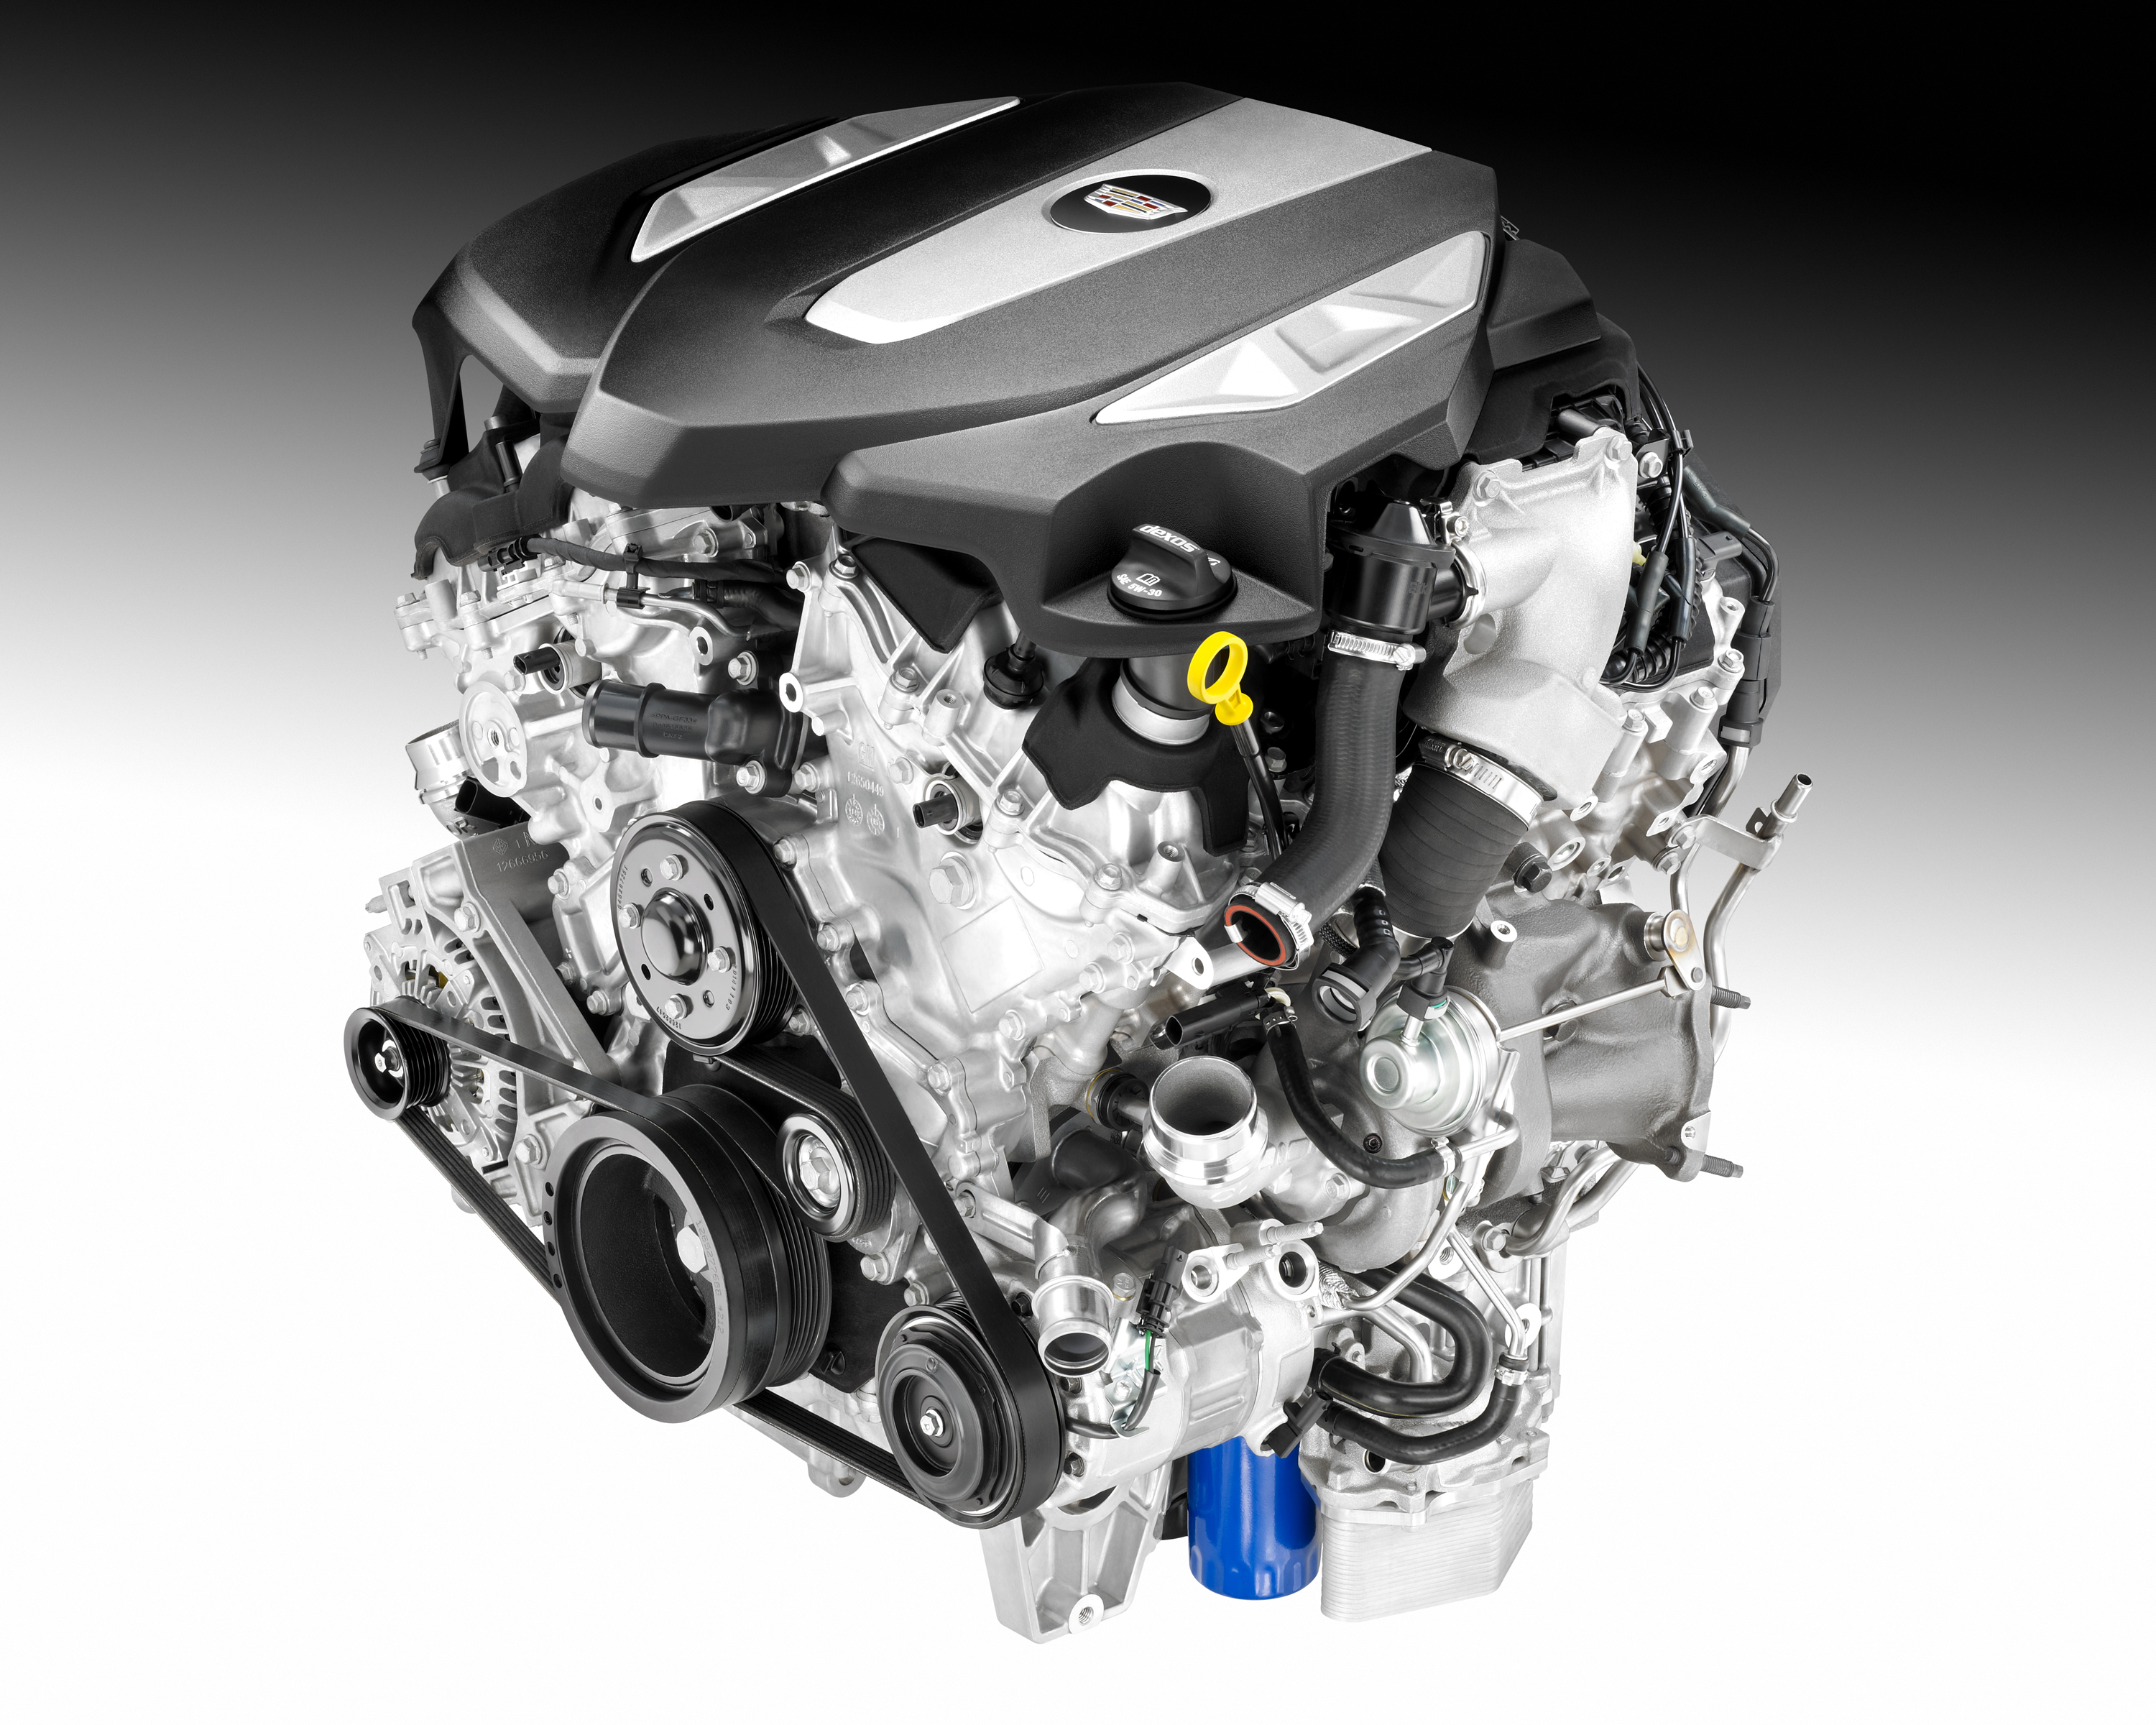 vw engine diagram with 30l Twin Turbo Lgw V6 Engine To Power The 2016 Cadillac Ct6 Video 93526 on Vw 1 5l Tsi Evo Engine Torque Curve moreover Seat Leon Facelift 2017 Vorstellung Fahrbericht 9063377 in addition Vr6 2v also Subaru Outback Engine Sensor Diagram together with Dsg Gearbox Explained.